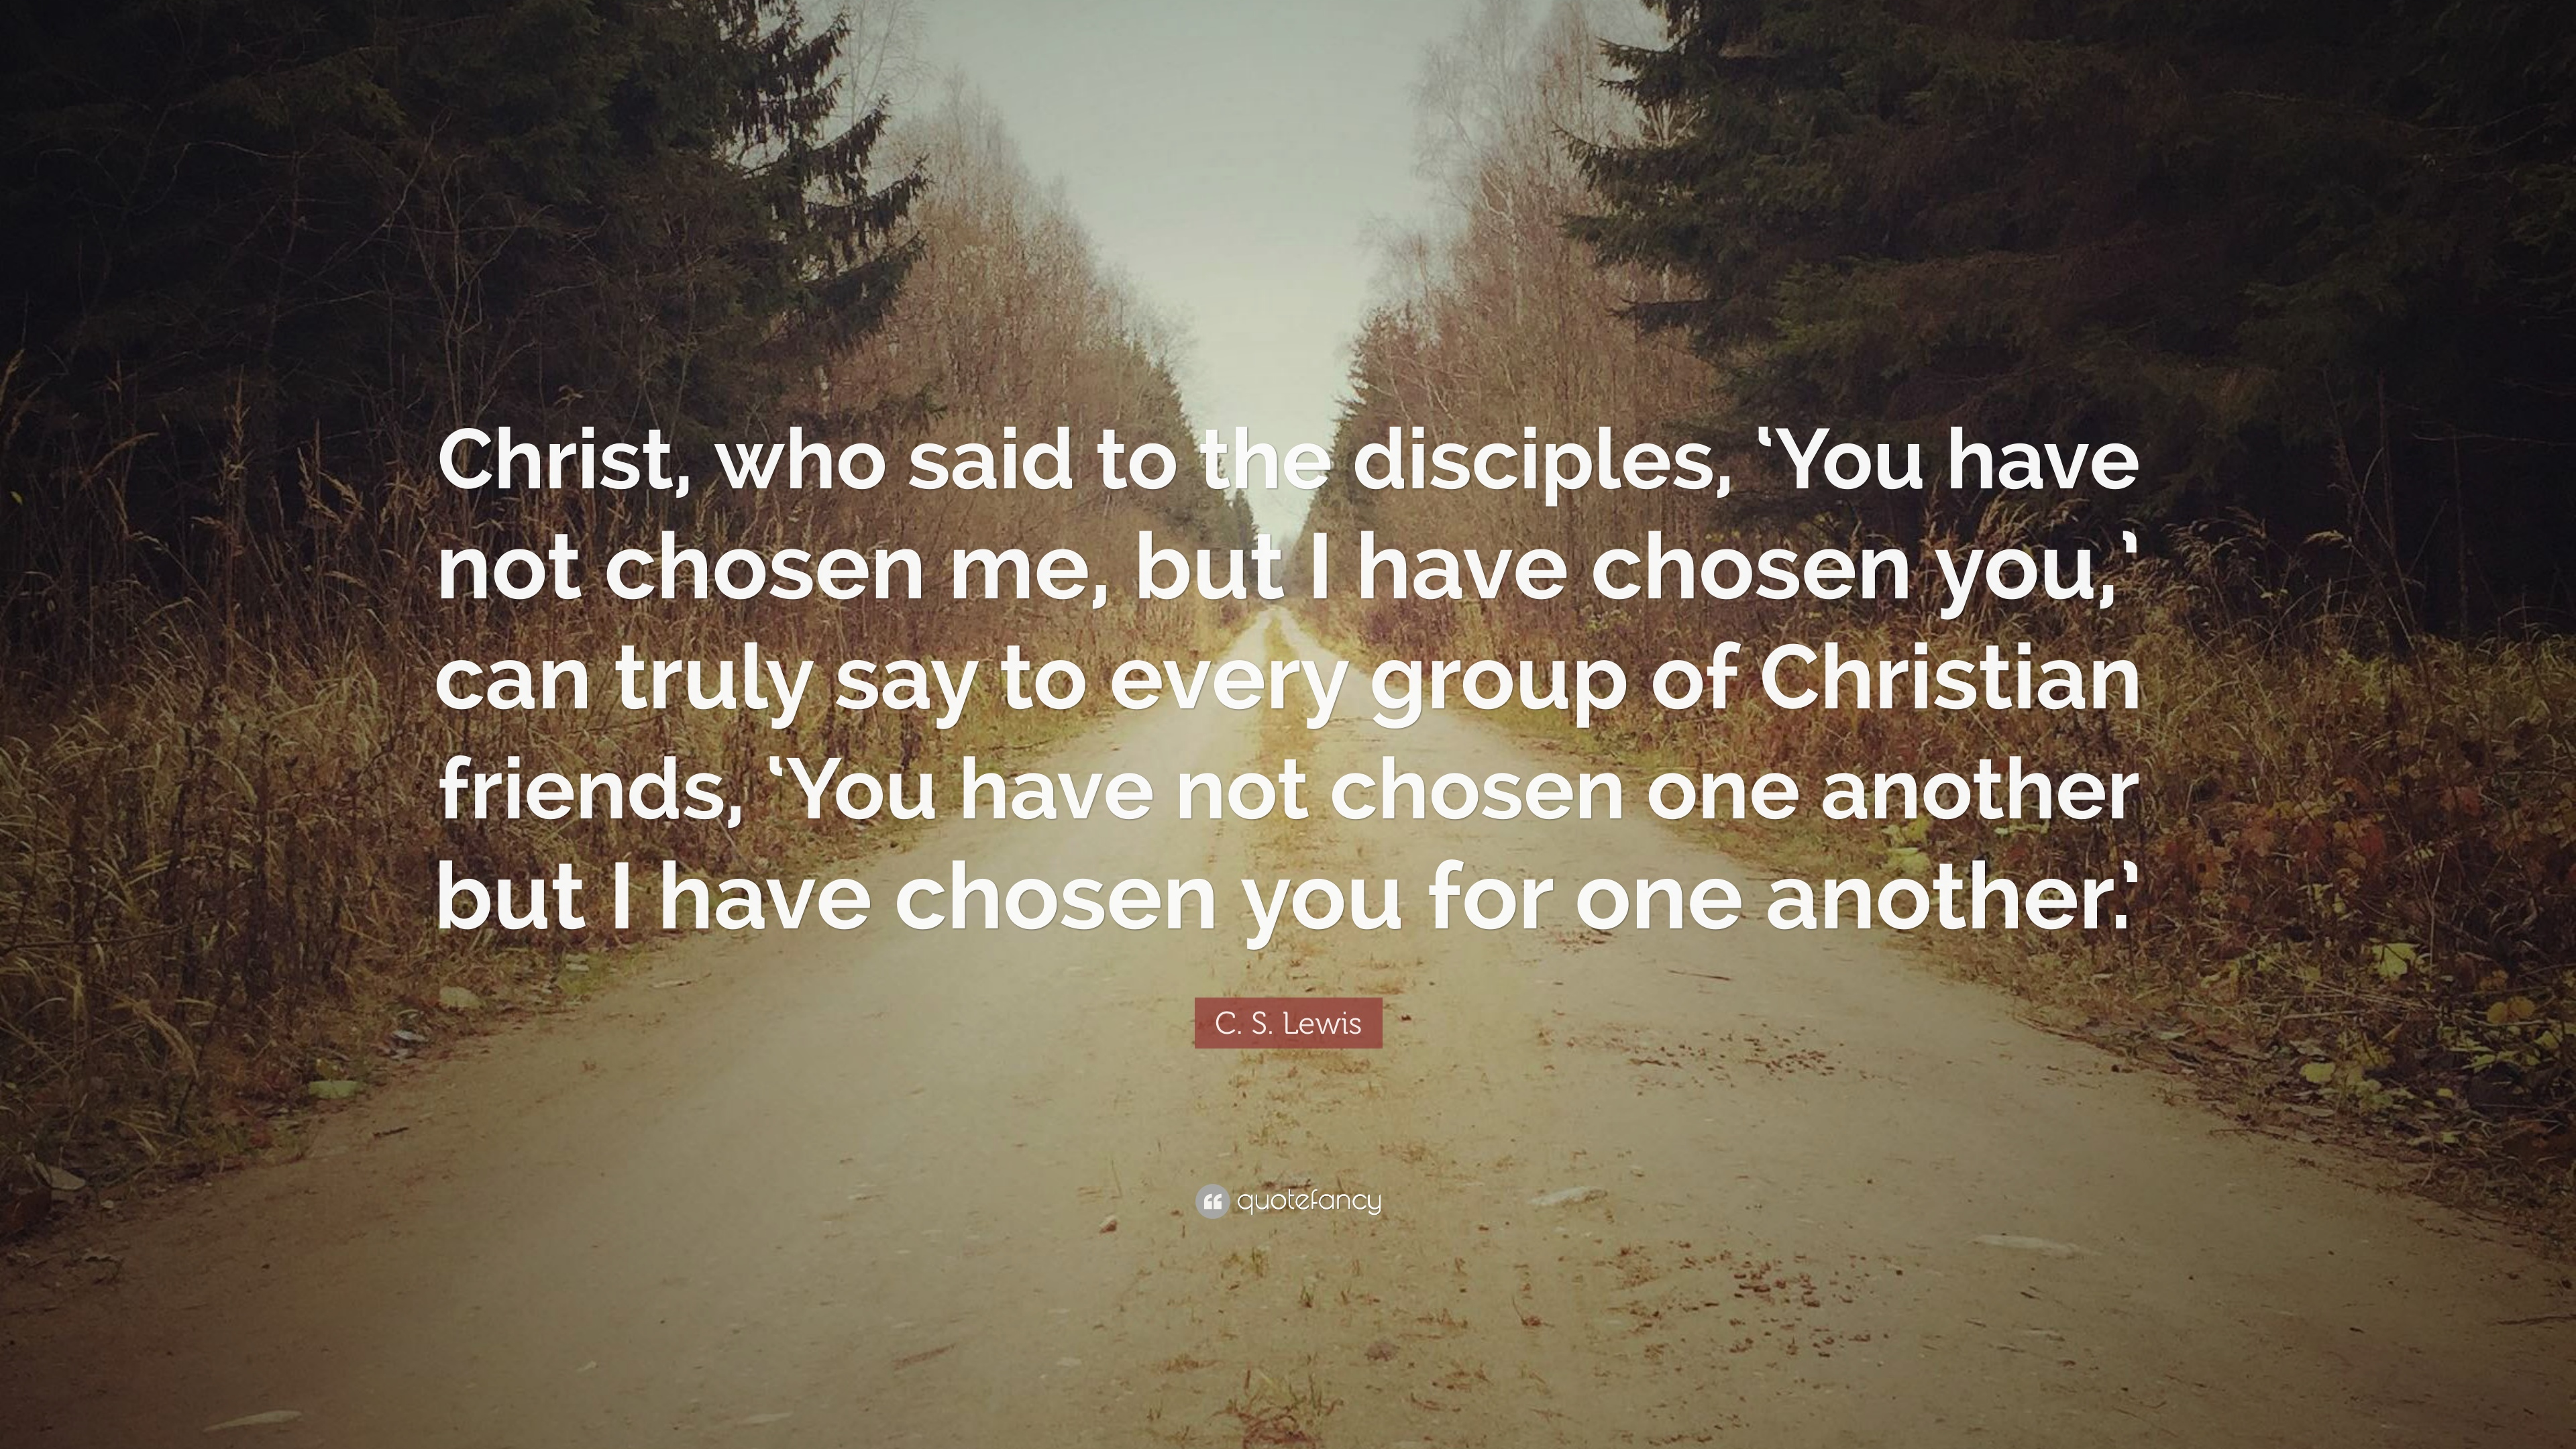 C S Lewis Quote Christ Who Said To The Disciples You Have Not Chosen Me But I Have Chosen You Can Truly Say To Every Group Of Chri 10 Wallpapers Quotefancy